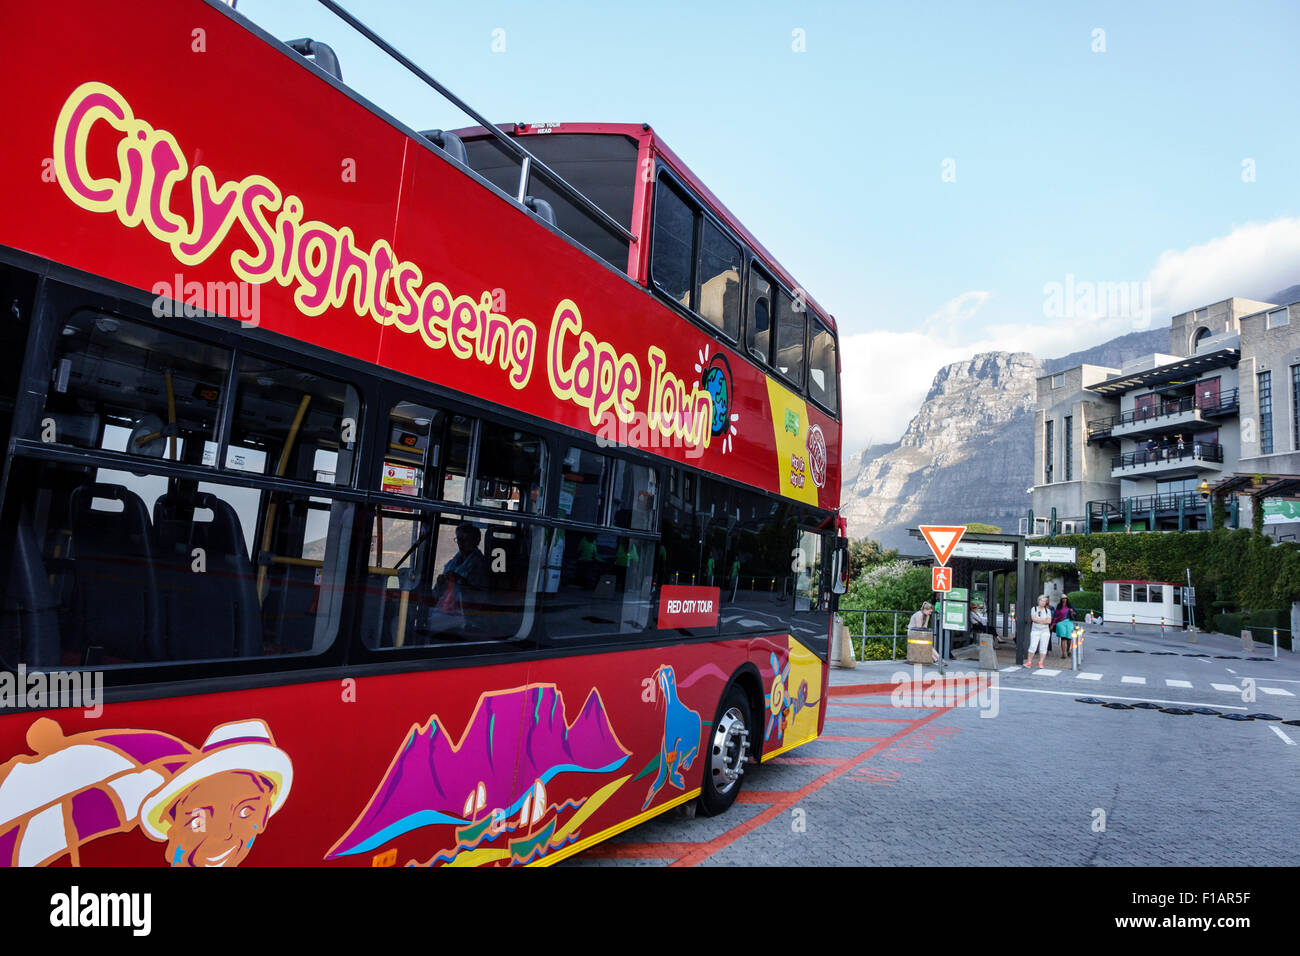 Cape Town South Africa African Table Mountain National Park Tafelberg Road City Sightseeing red double decker bus - Stock Image